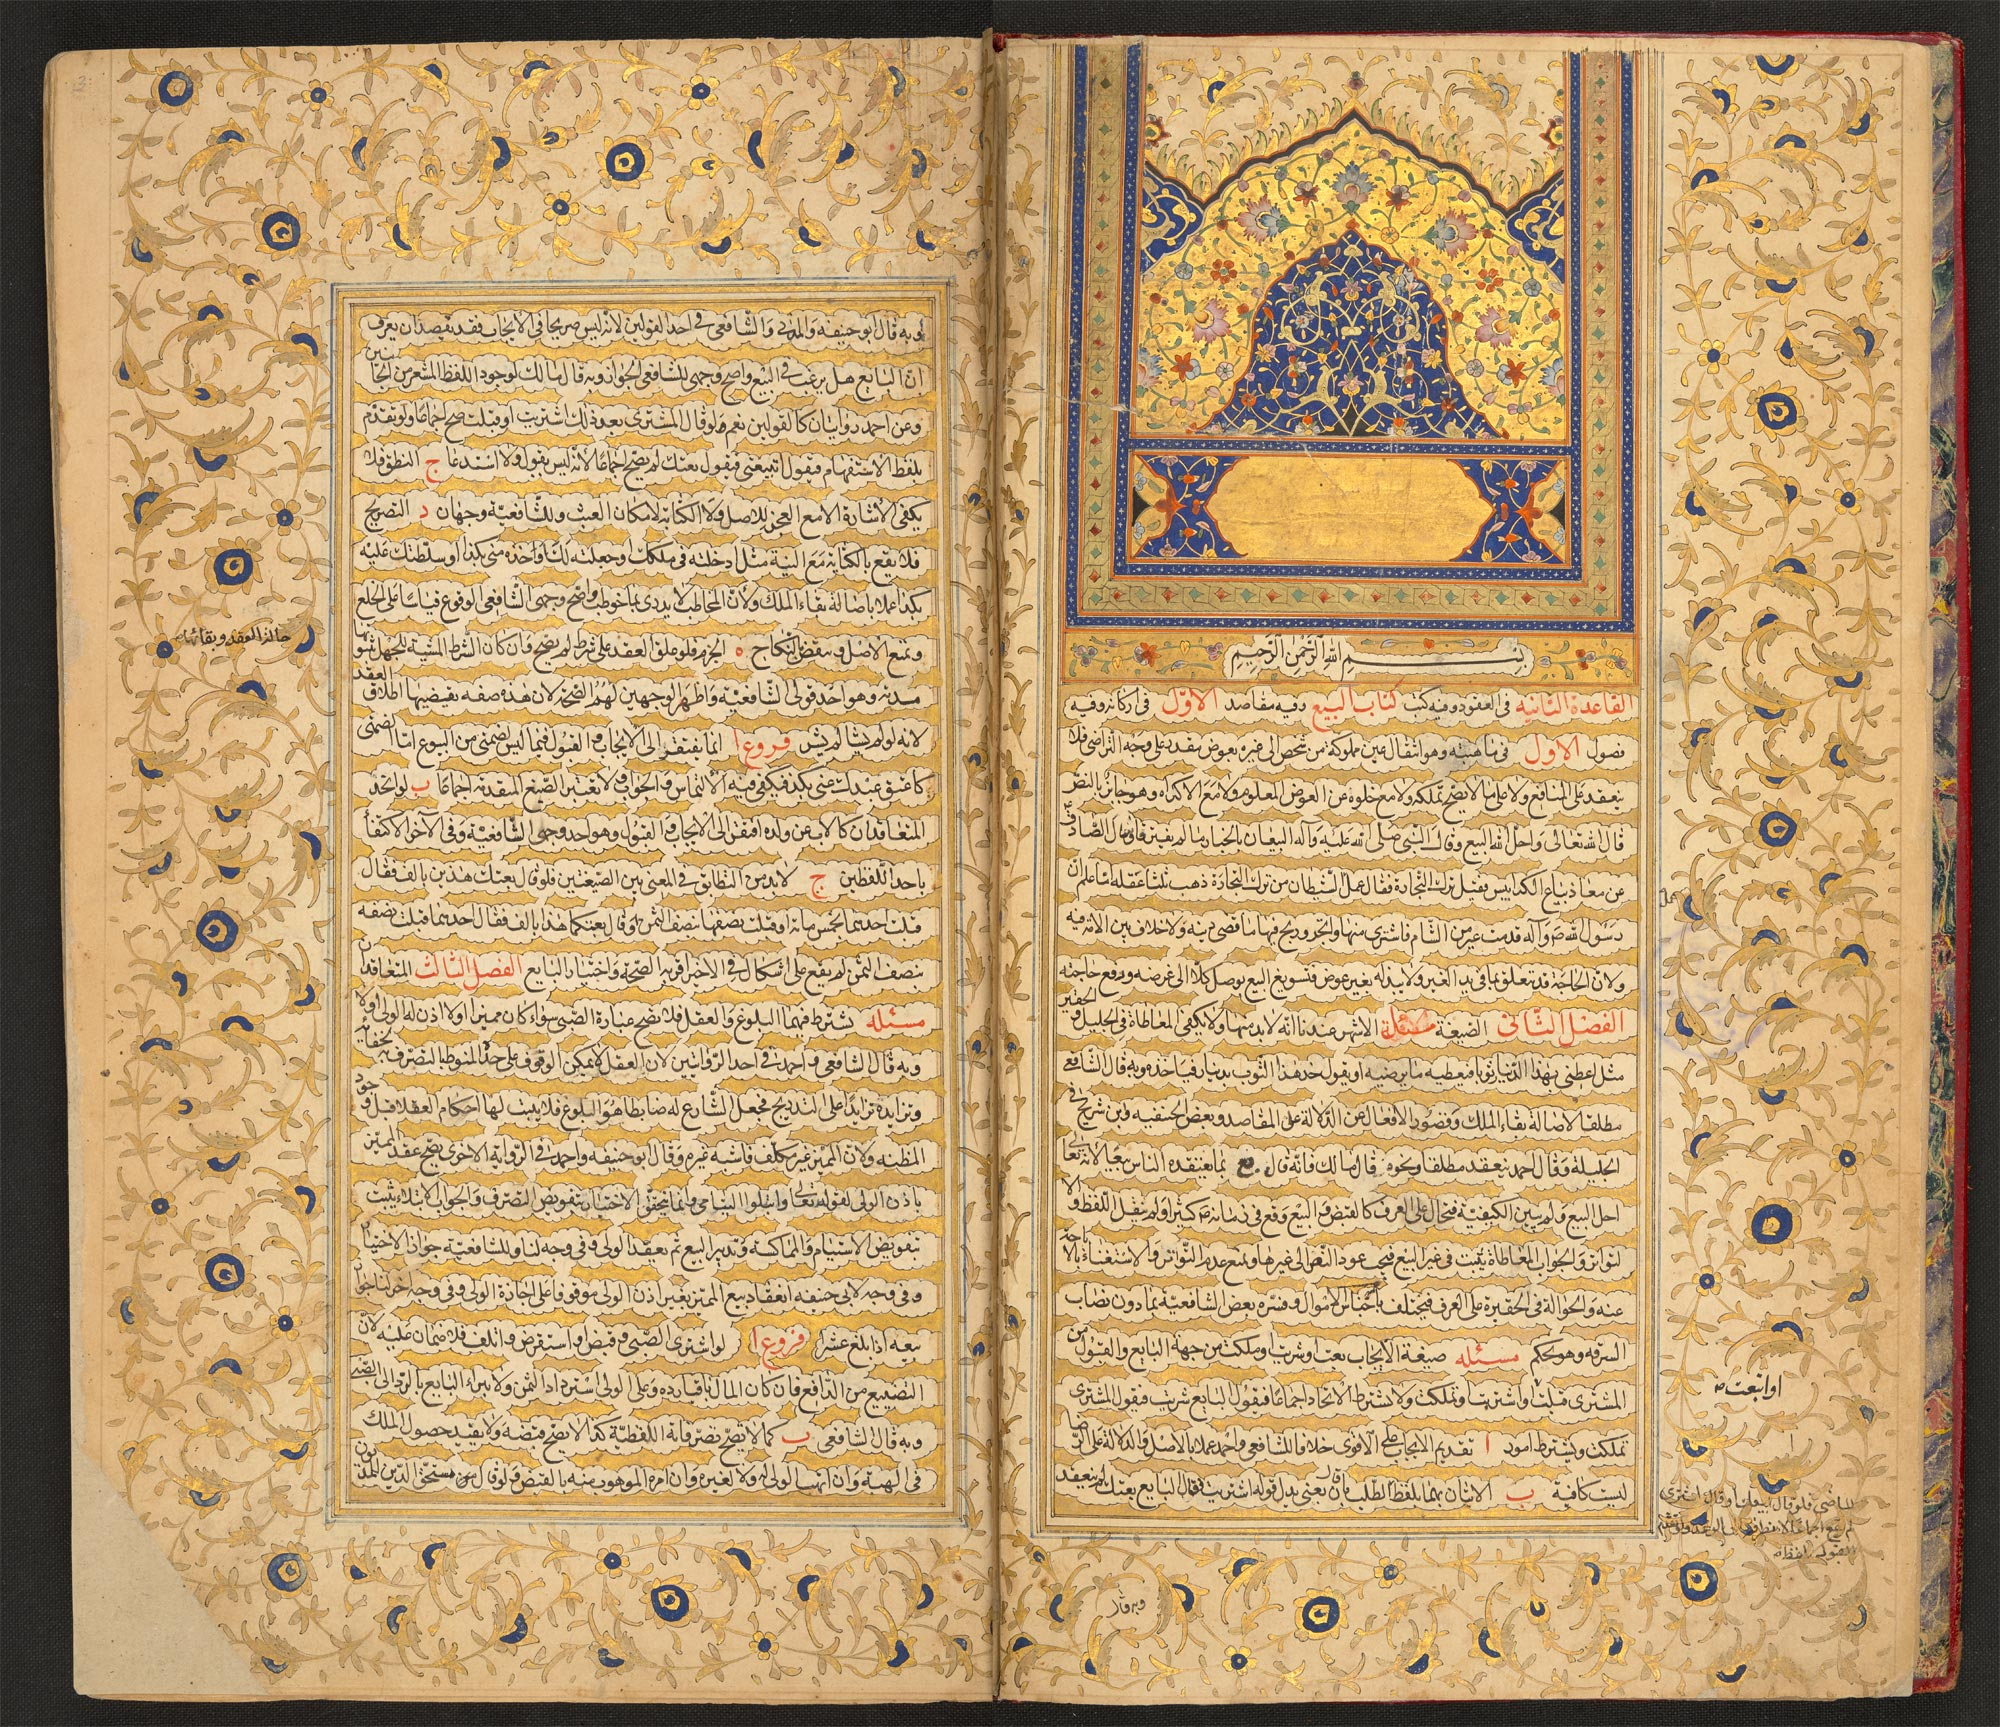 Double page from Shi'ite fatwas in the Kitab Tadhkirat al-Fuqaha', 17th century, f002v-003r